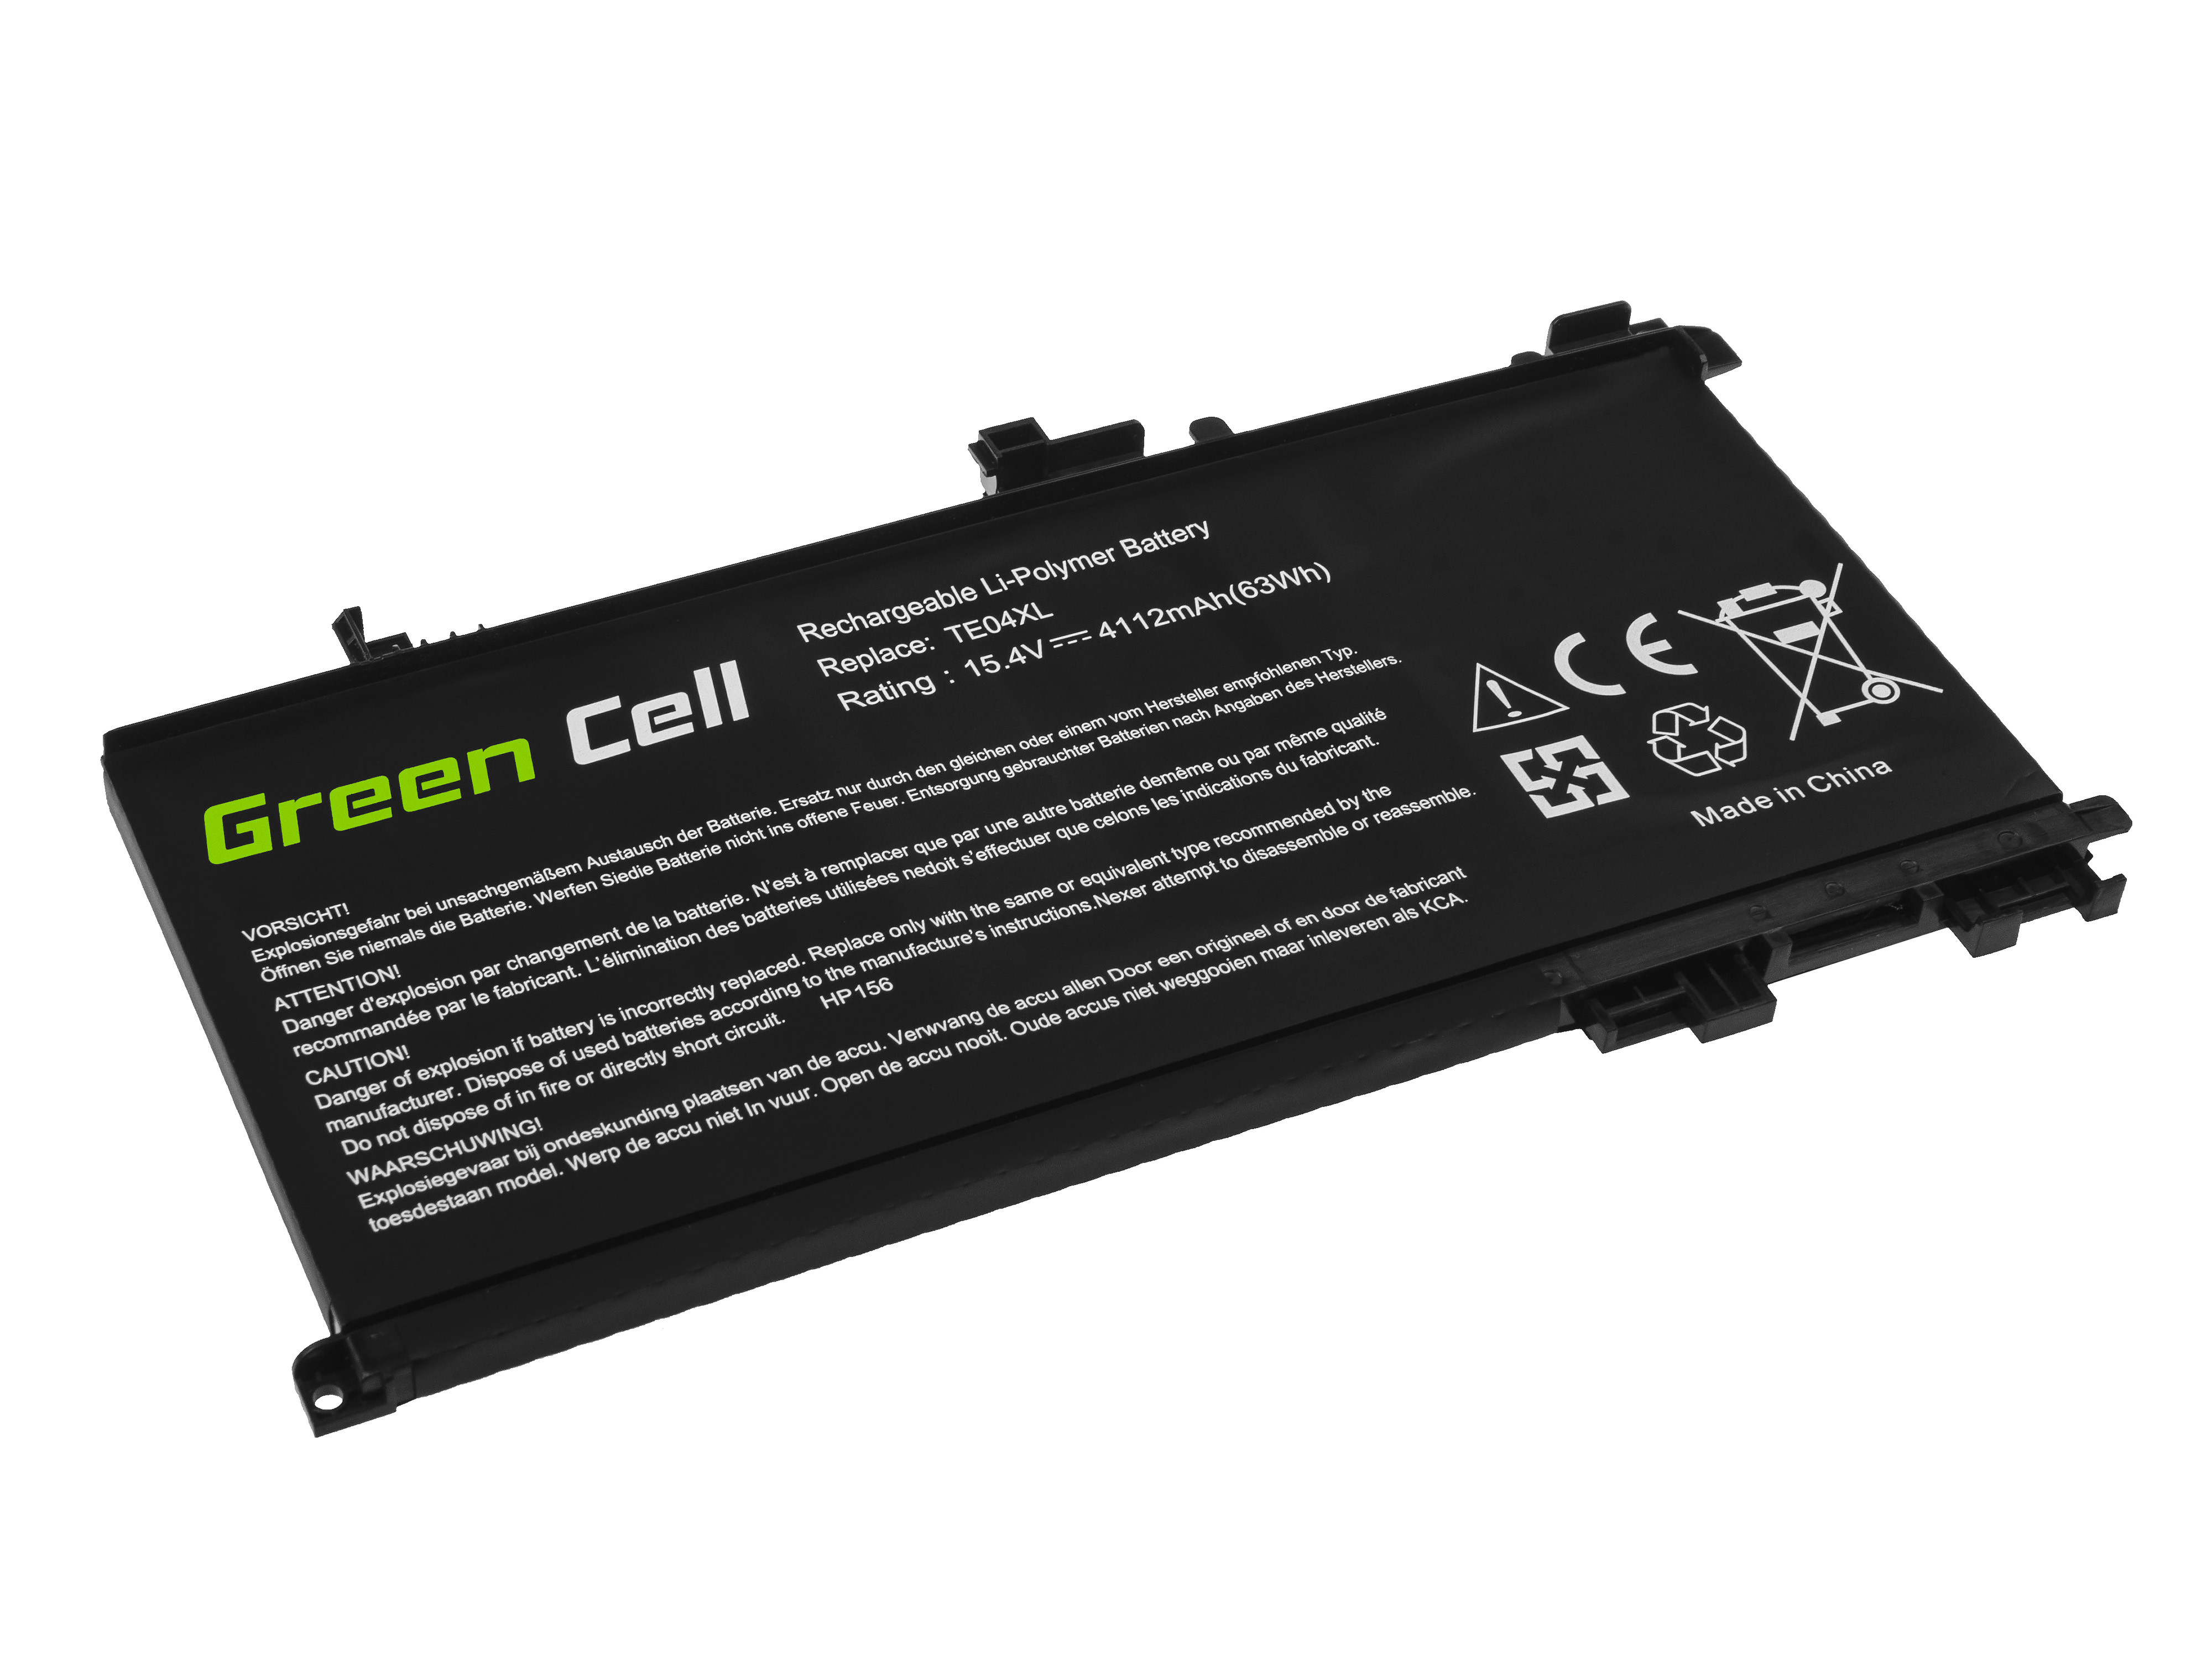 Green Cell Battery TE04XL for HP Omen 15-AX 15-AX052NW 15-AX204NW 15-AX205NW 15-AX212NW 15-AX213NW Pavilion 15-BC050NW